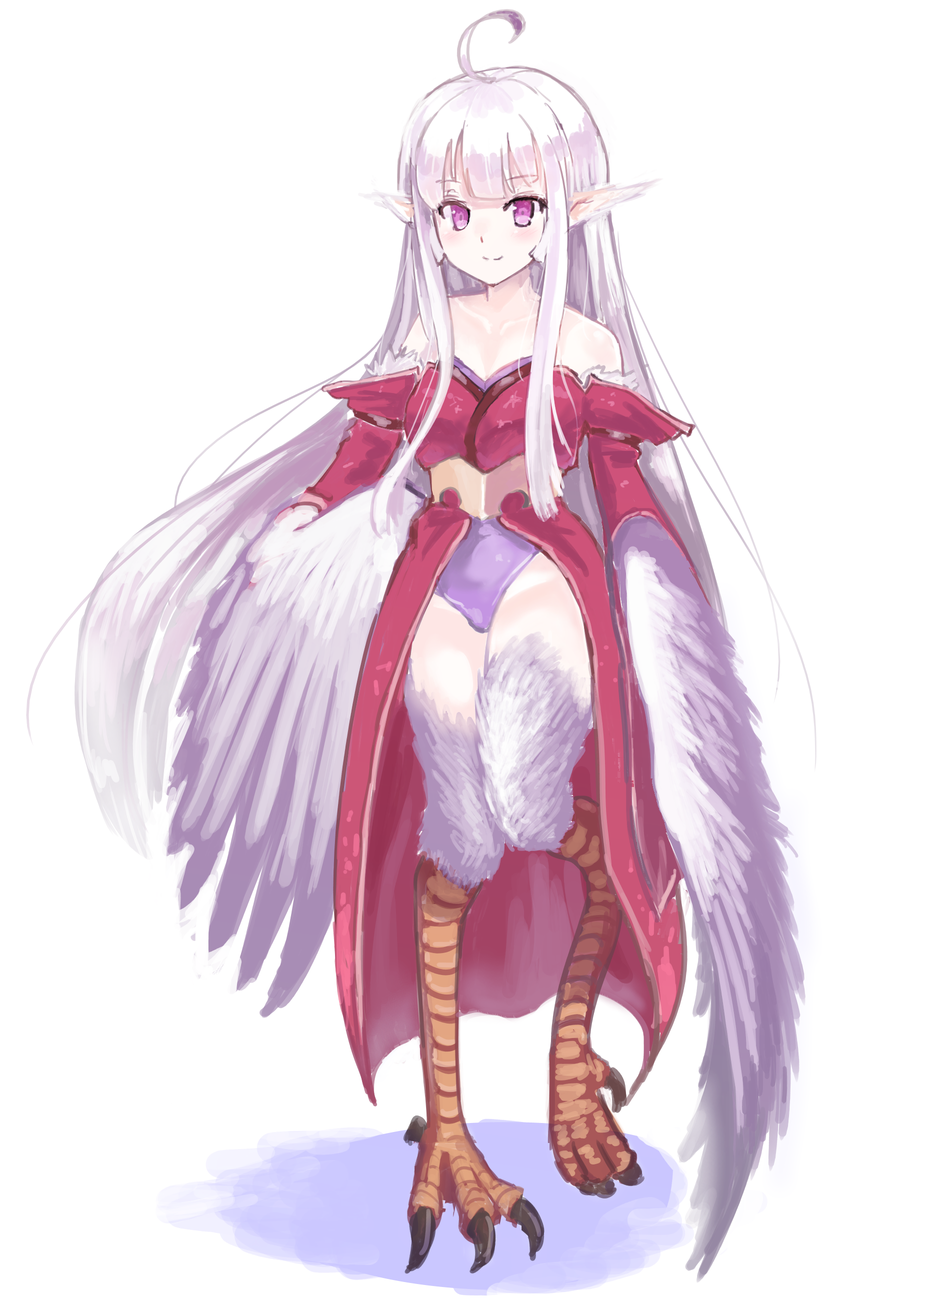 1girl ahoge bangs bare_shoulders blunt_bangs claws commentary_request detached_sleeves eyebrows_visible_through_hair feathered_wings feathers full_body harpy highres japanese_clothes kimono leotard long_hair looking_at_viewer monster_girl original purple_leotard silver_hair simple_background smile solo standing standing_on_one_leg tk2k_jade violet_eyes white_background wings